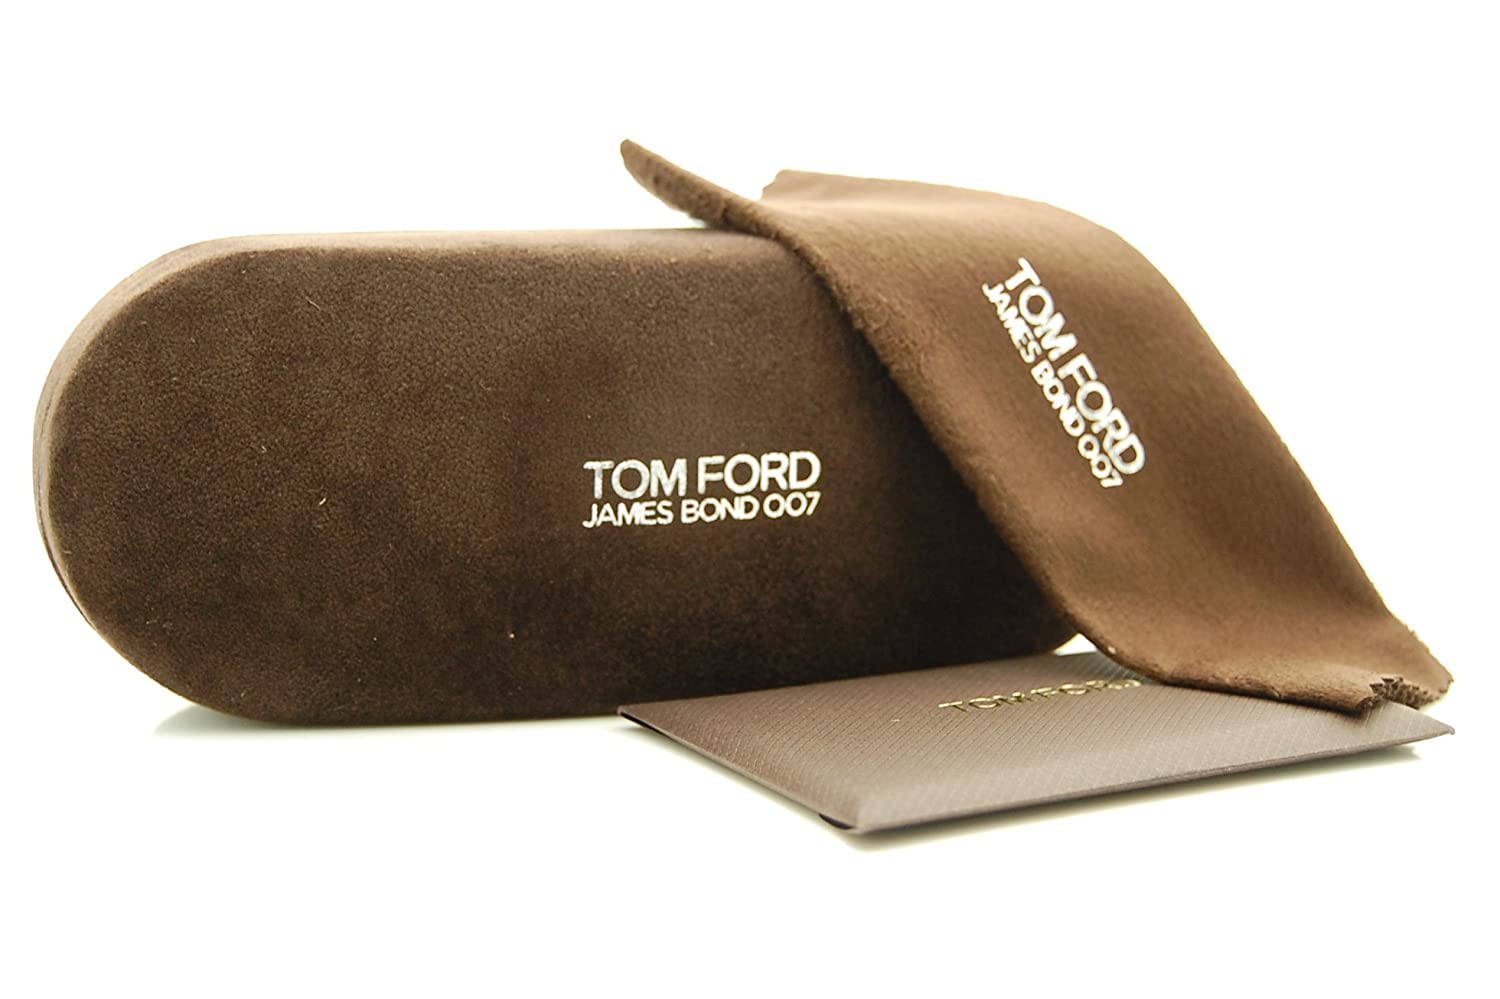 28dc14ff9f Amazon.com: Tom Ford FT 108 19V James Bond 007 sunglasses: Clothing